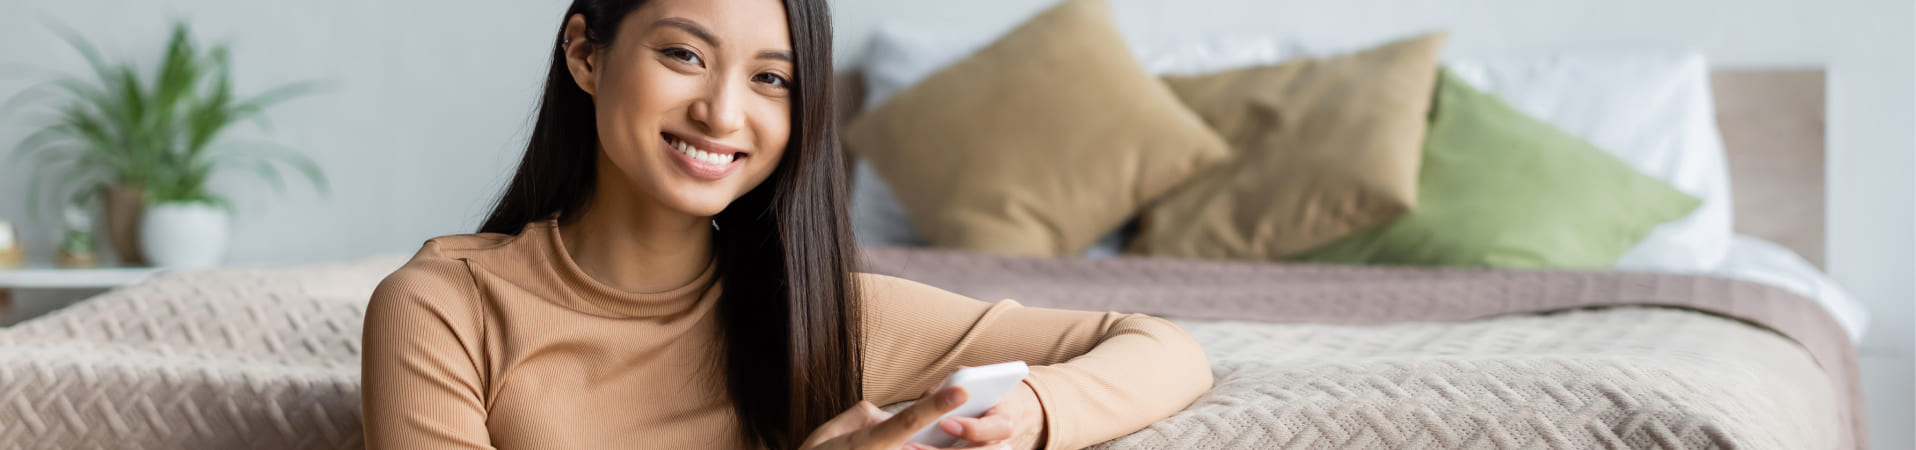 Young woman smiling, sitting in front of her bed while holding her smart phone in her hand.